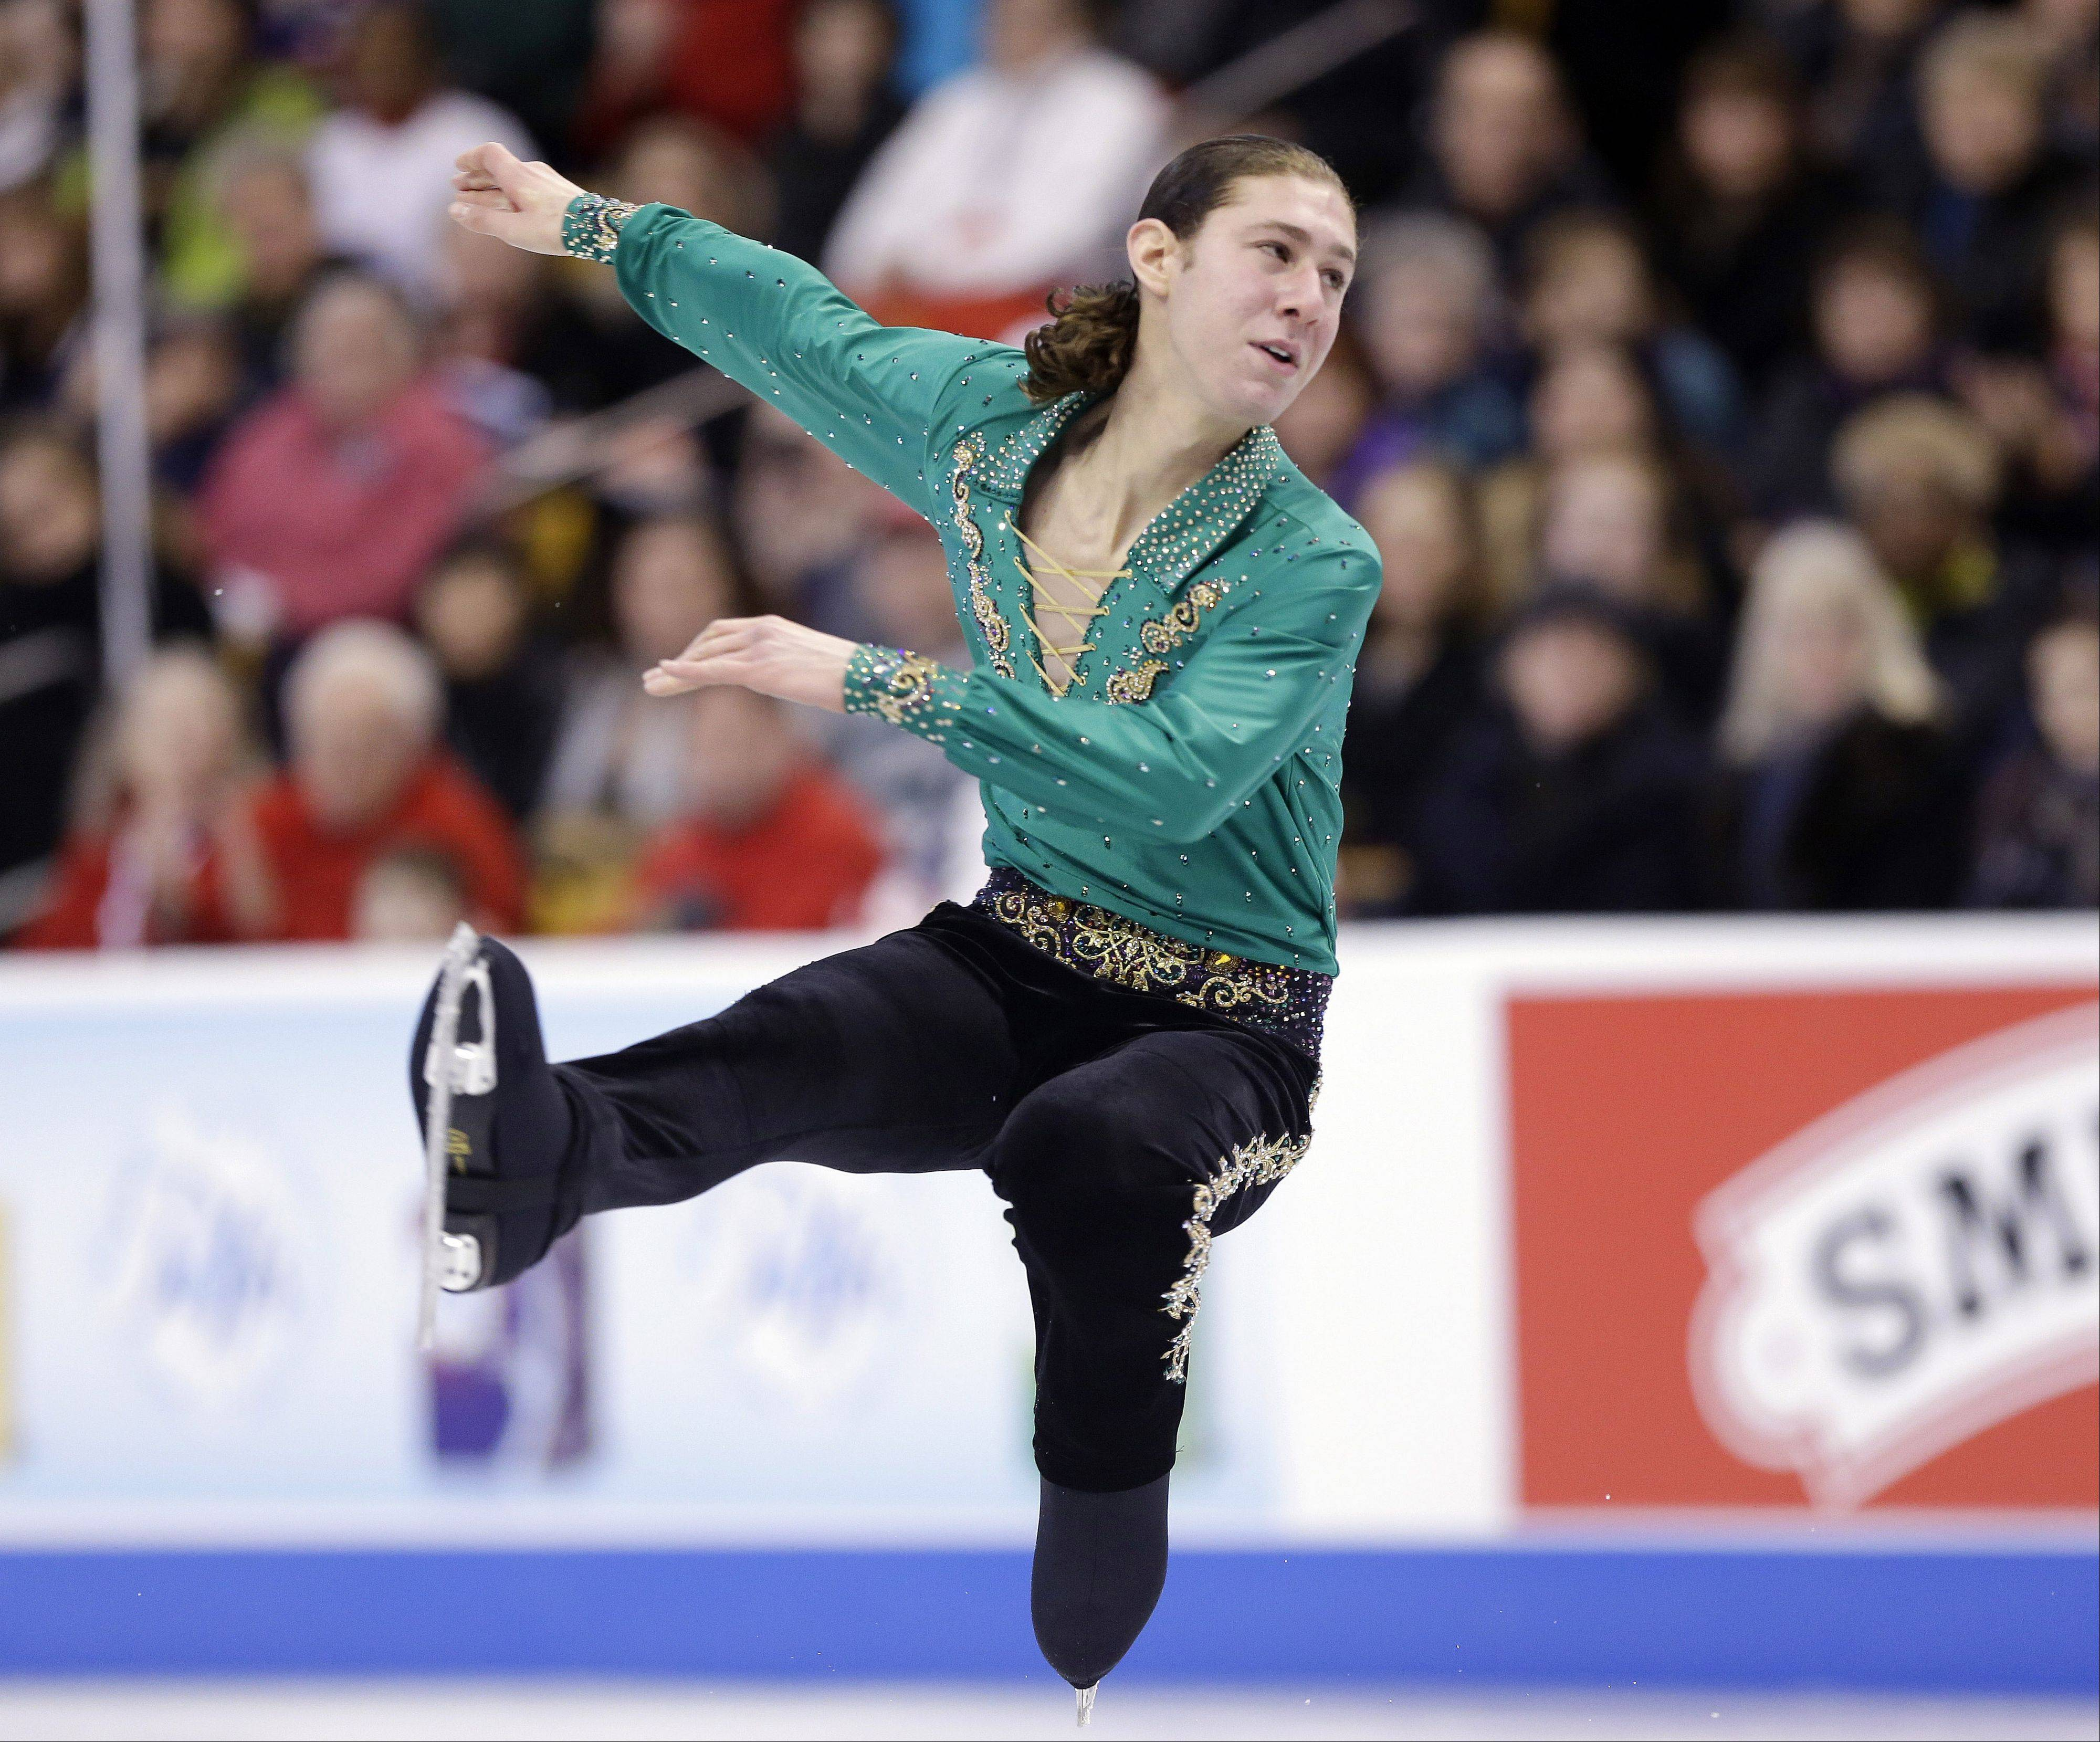 Jason Brown finished second in last month's U.S. Figure Skating Championships in Boston to secure his spot in Sochi.